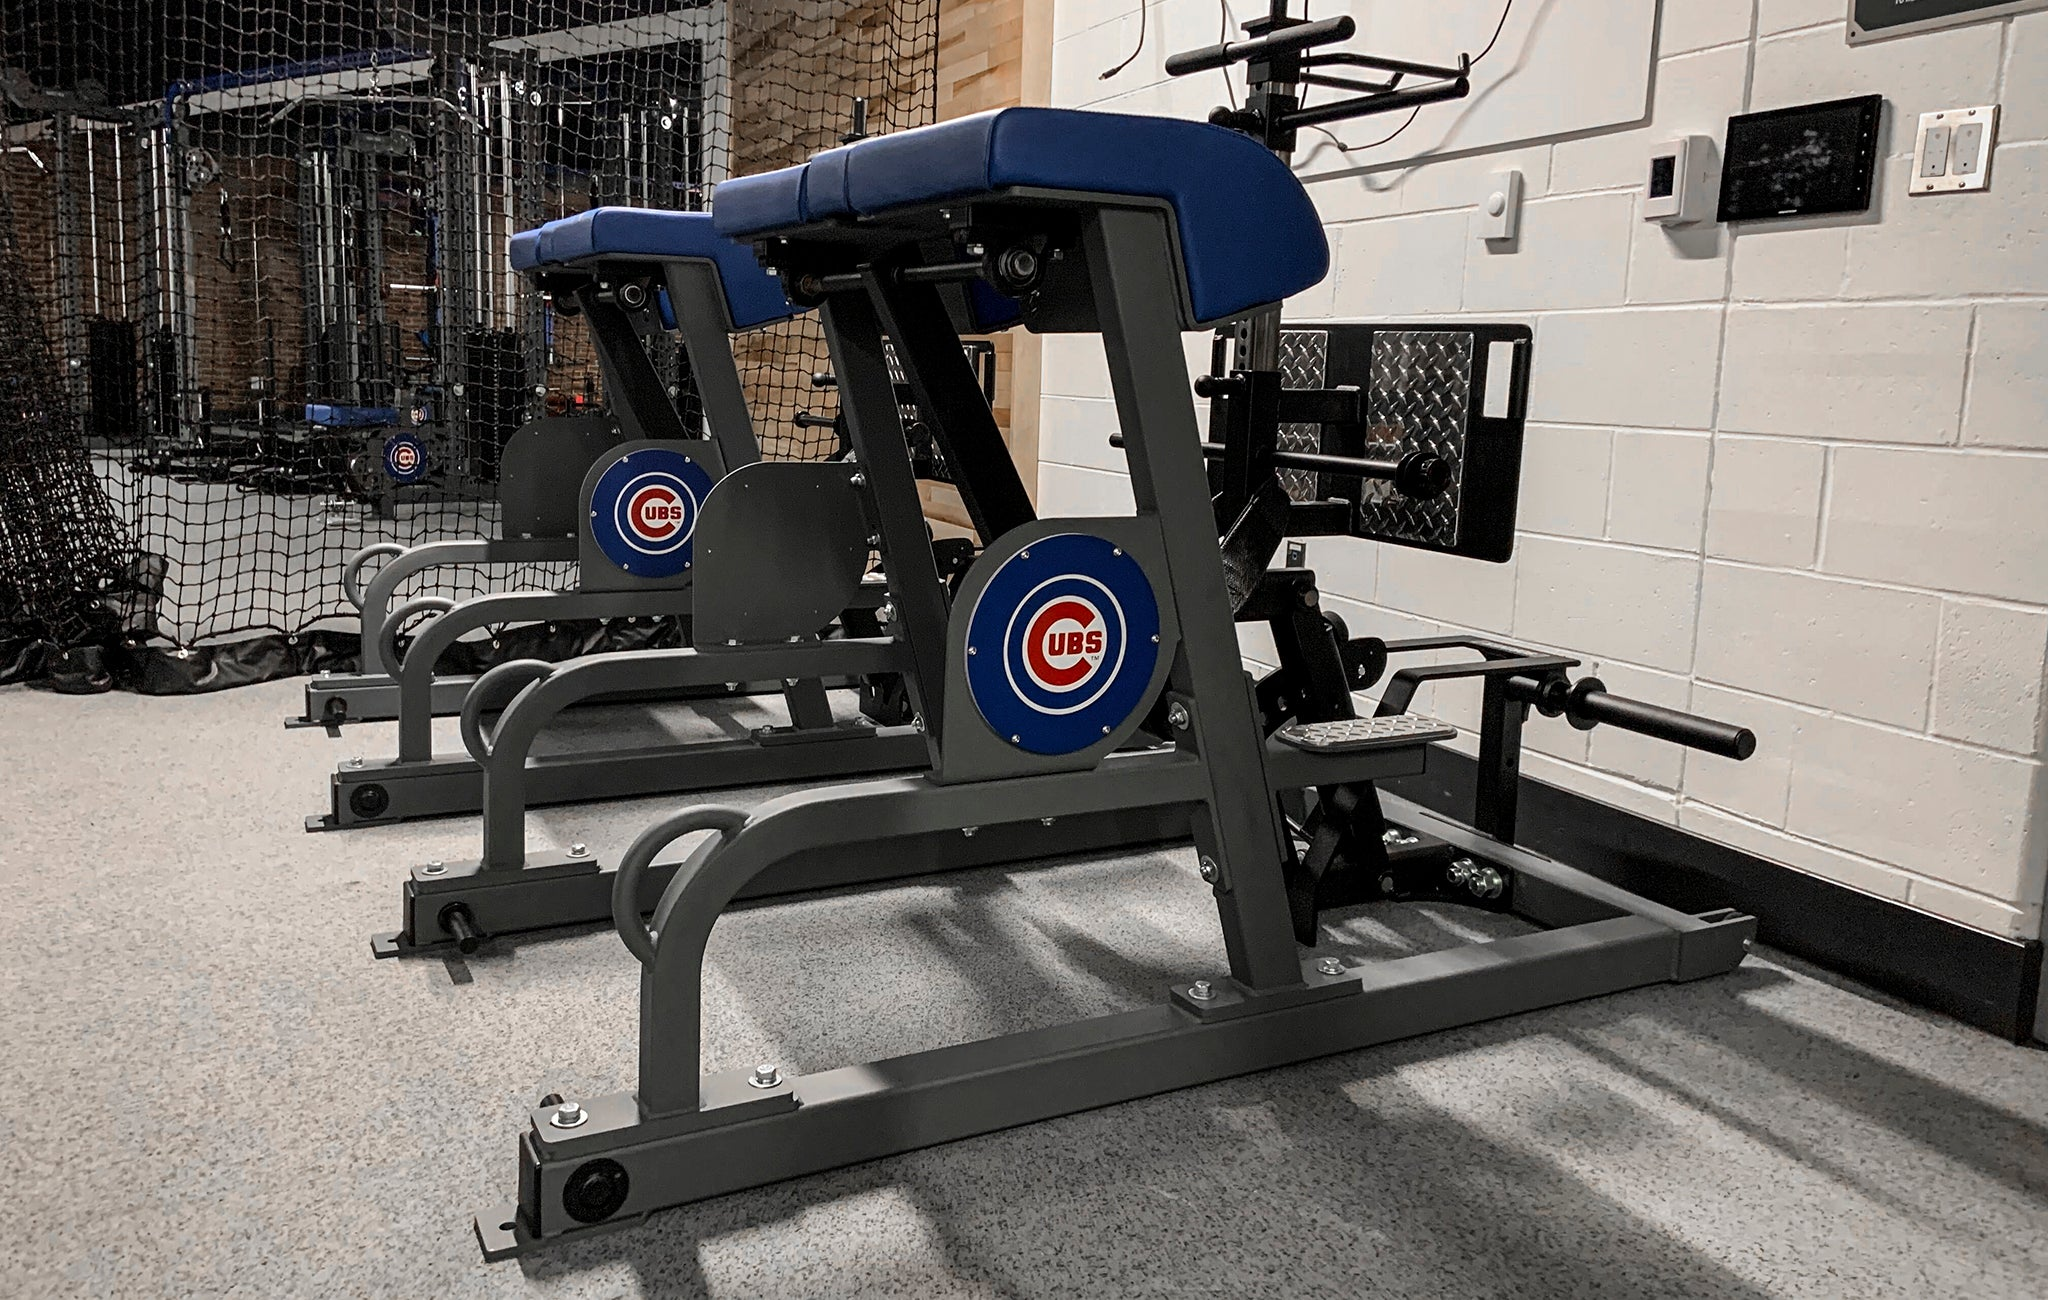 Cubs training center